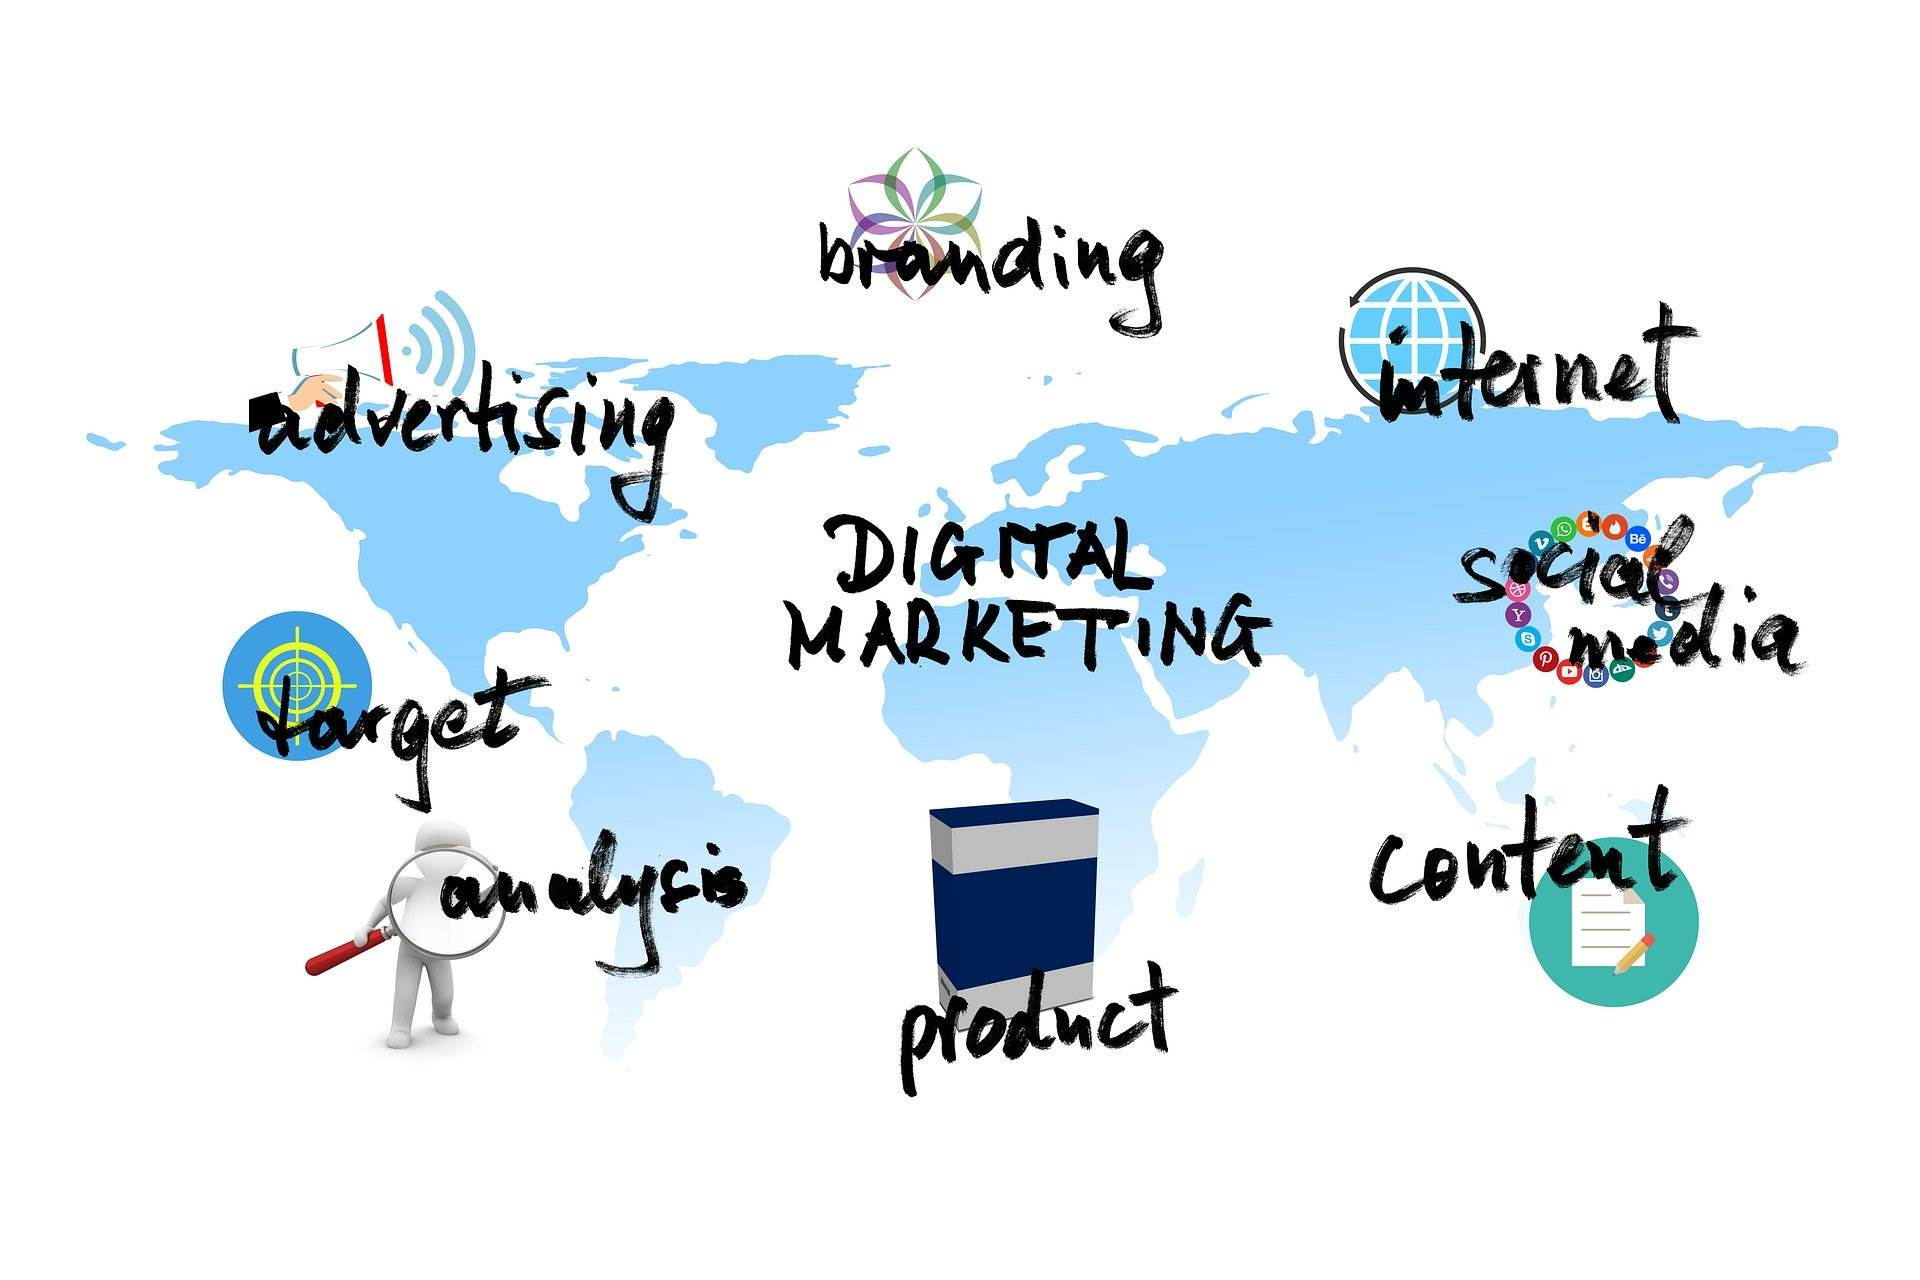 Legal considerations for digital marketing!